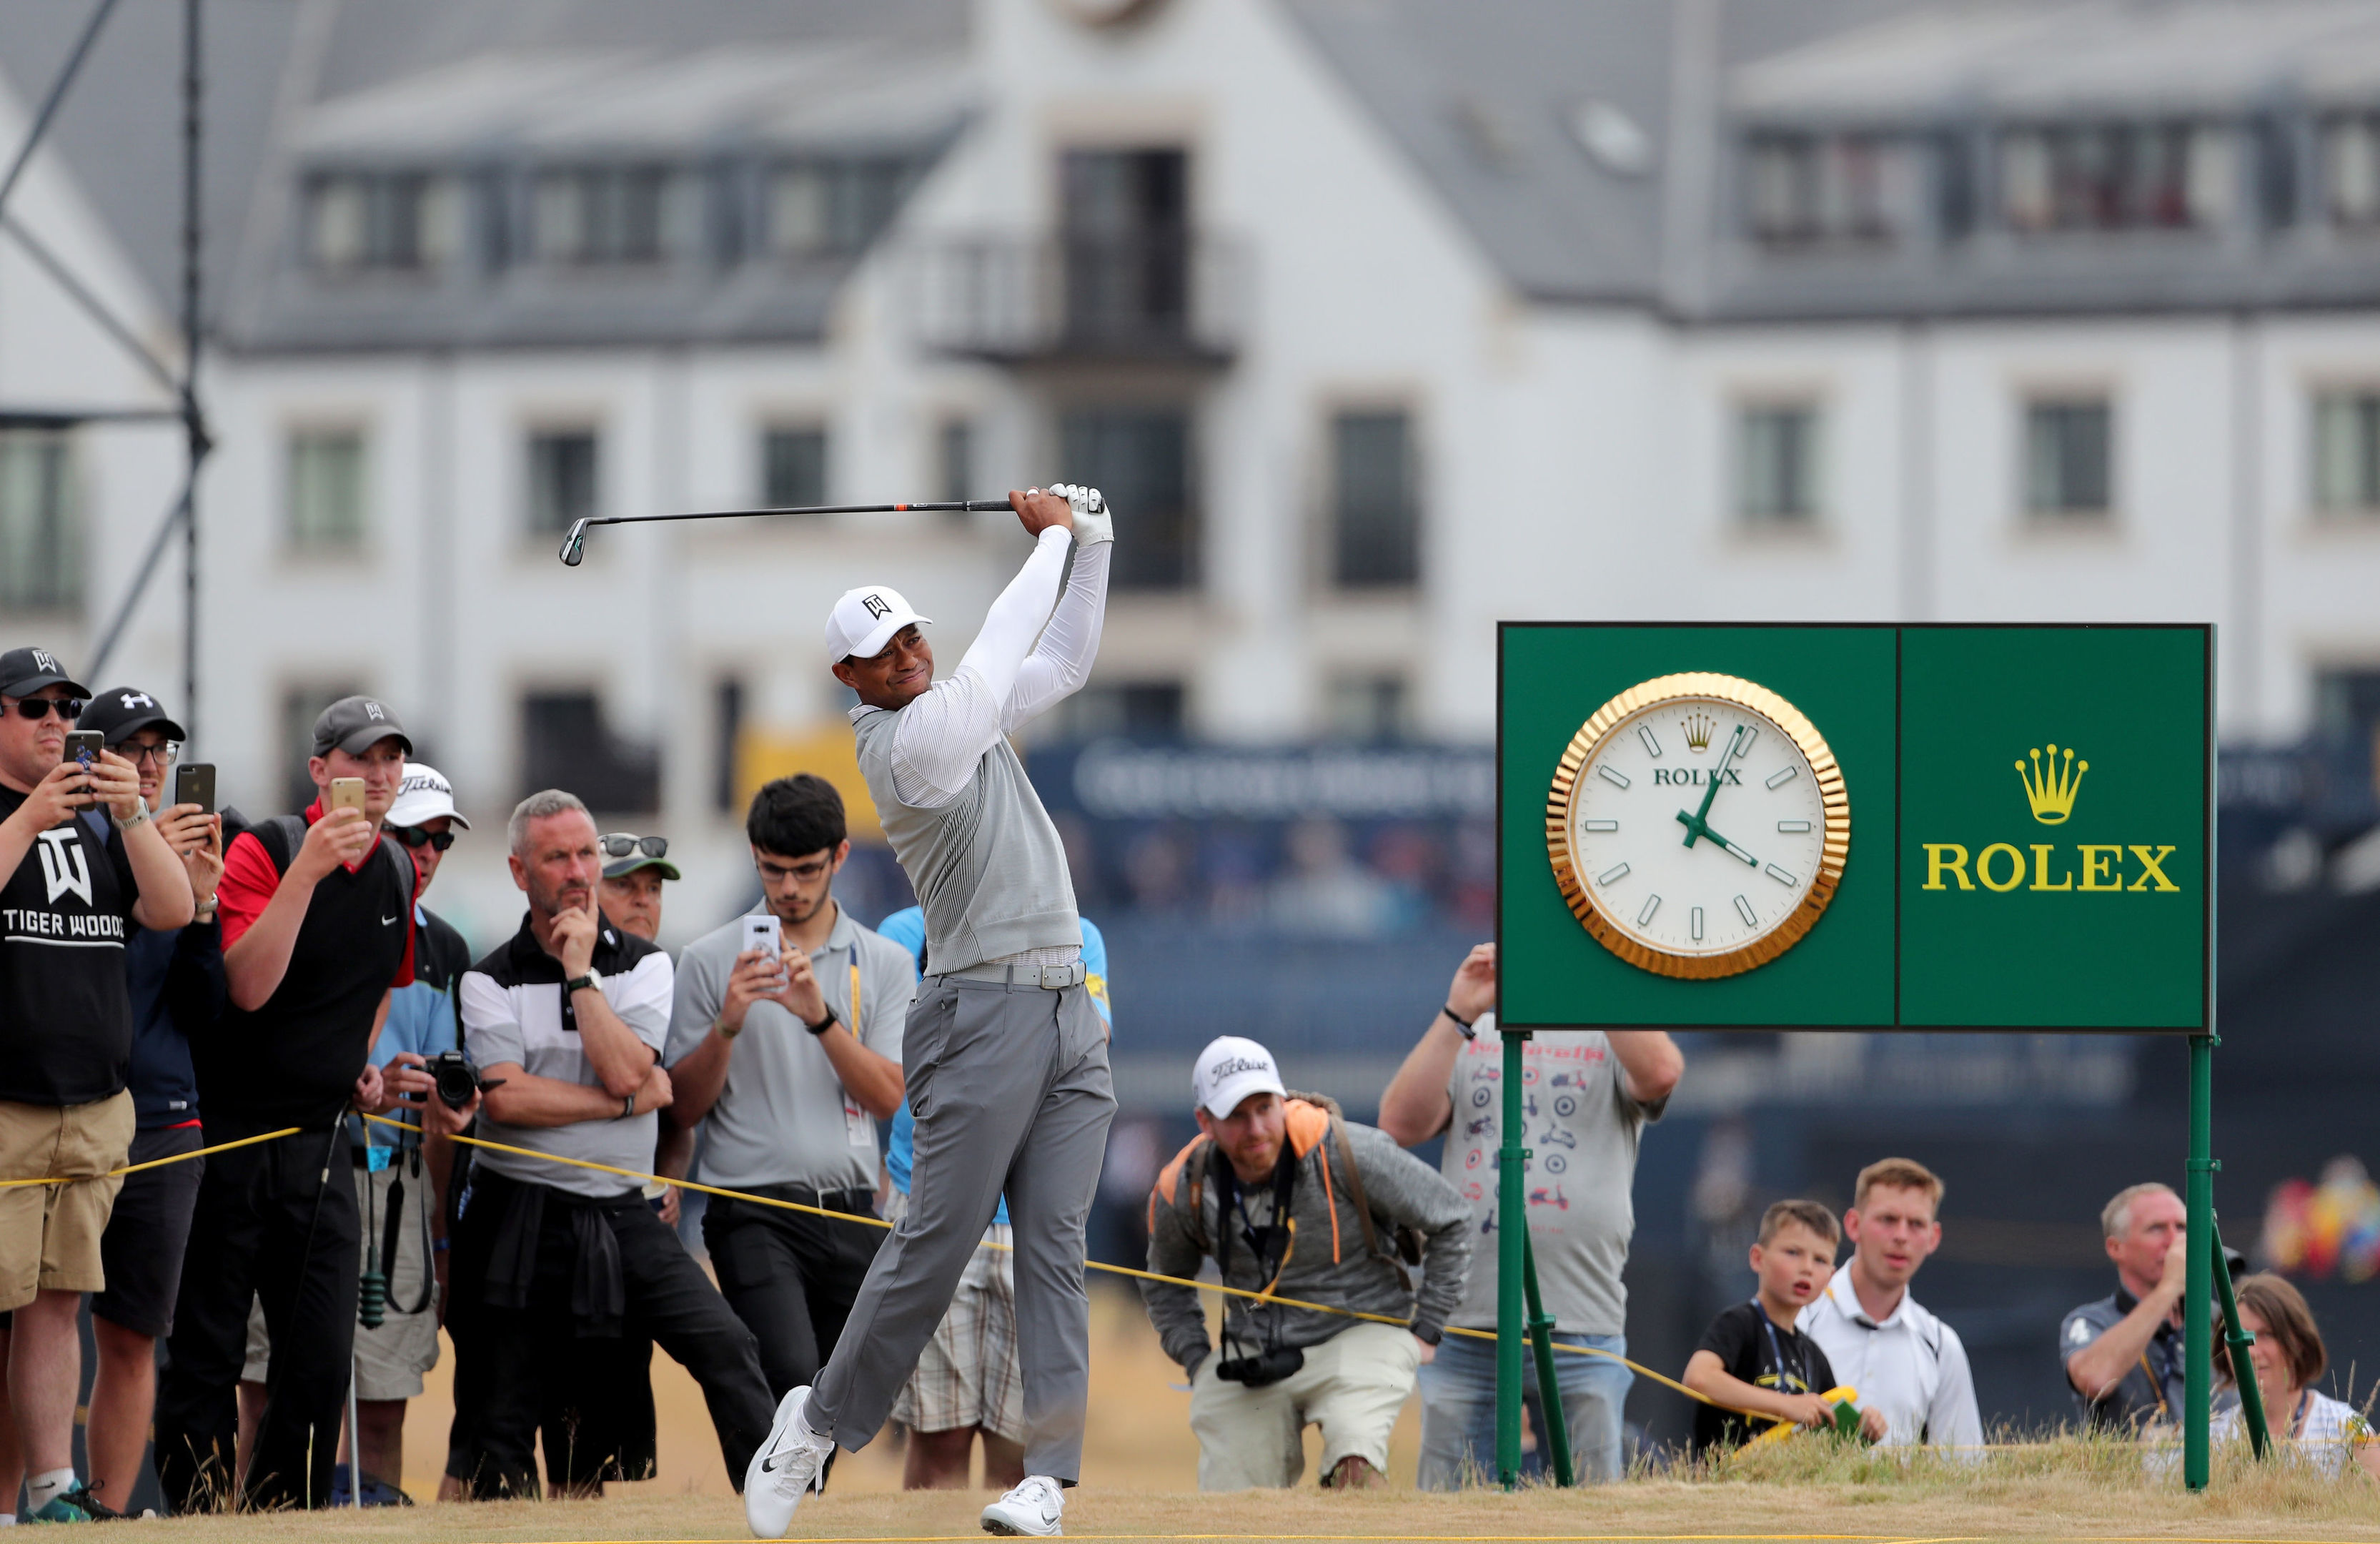 Tiger Woods tees off at The Open in Carnoustie.